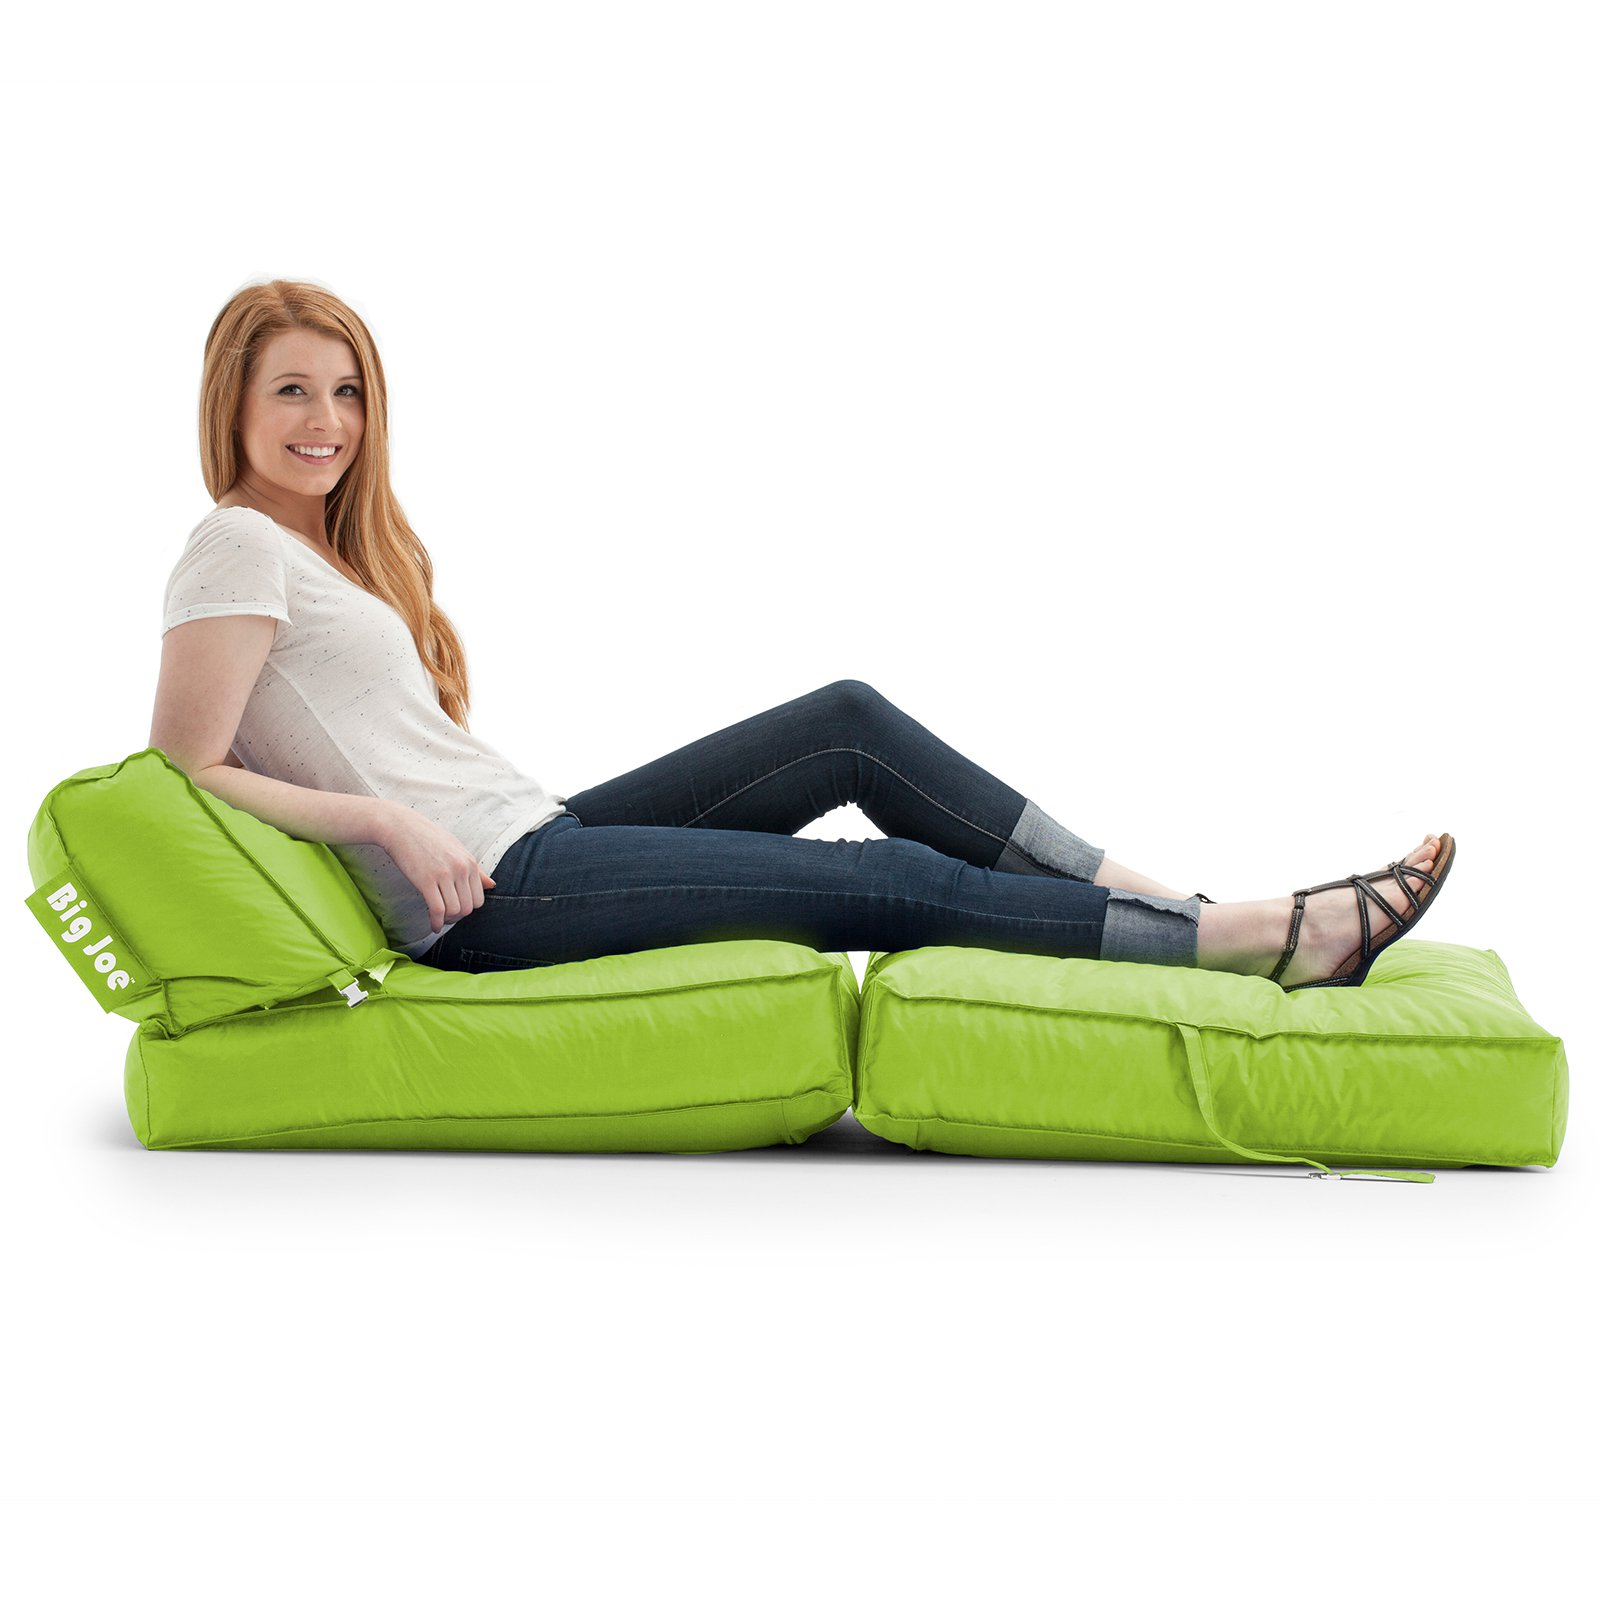 Big Joe Flip Lounger Bean Bag Multiple Colors Walmart